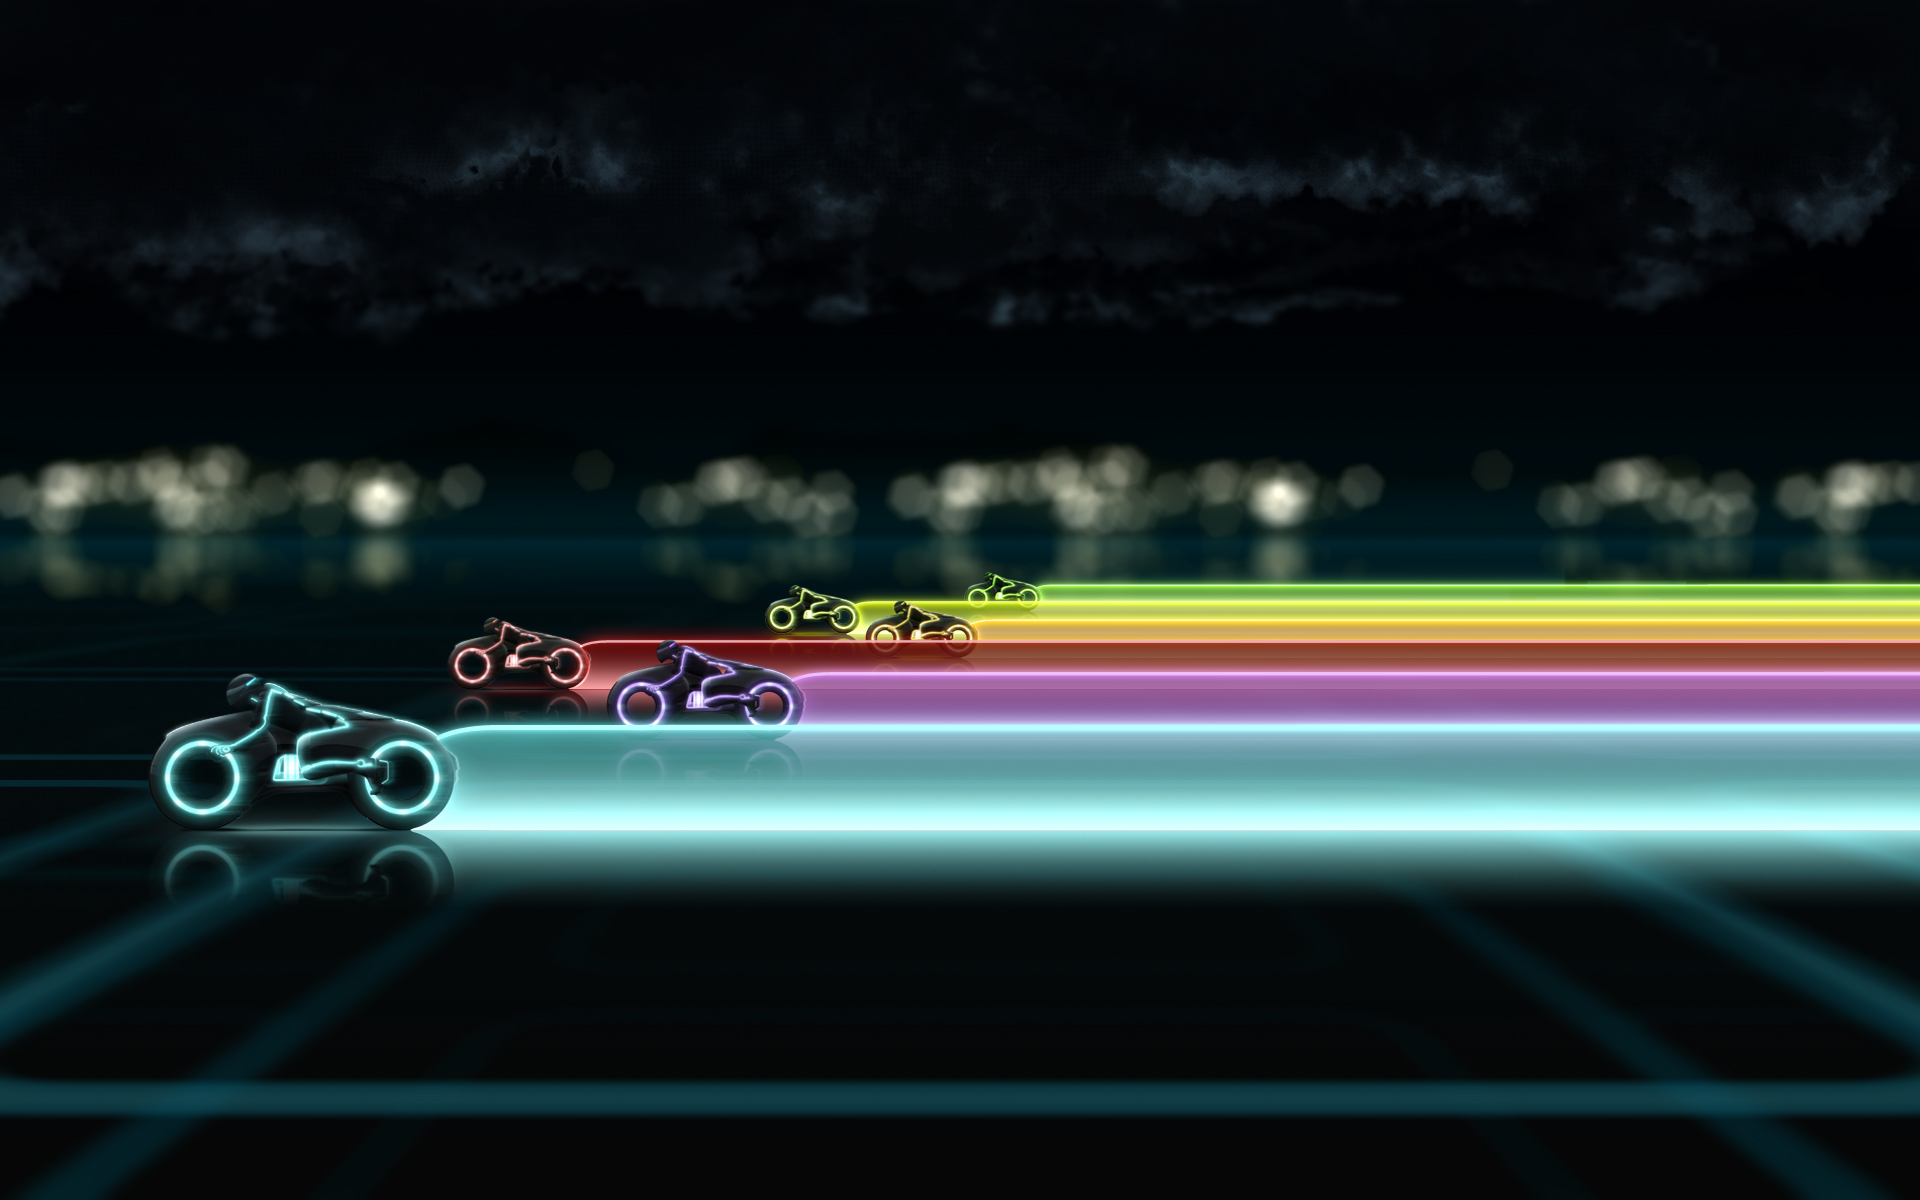 tron wallpapers bikes hd